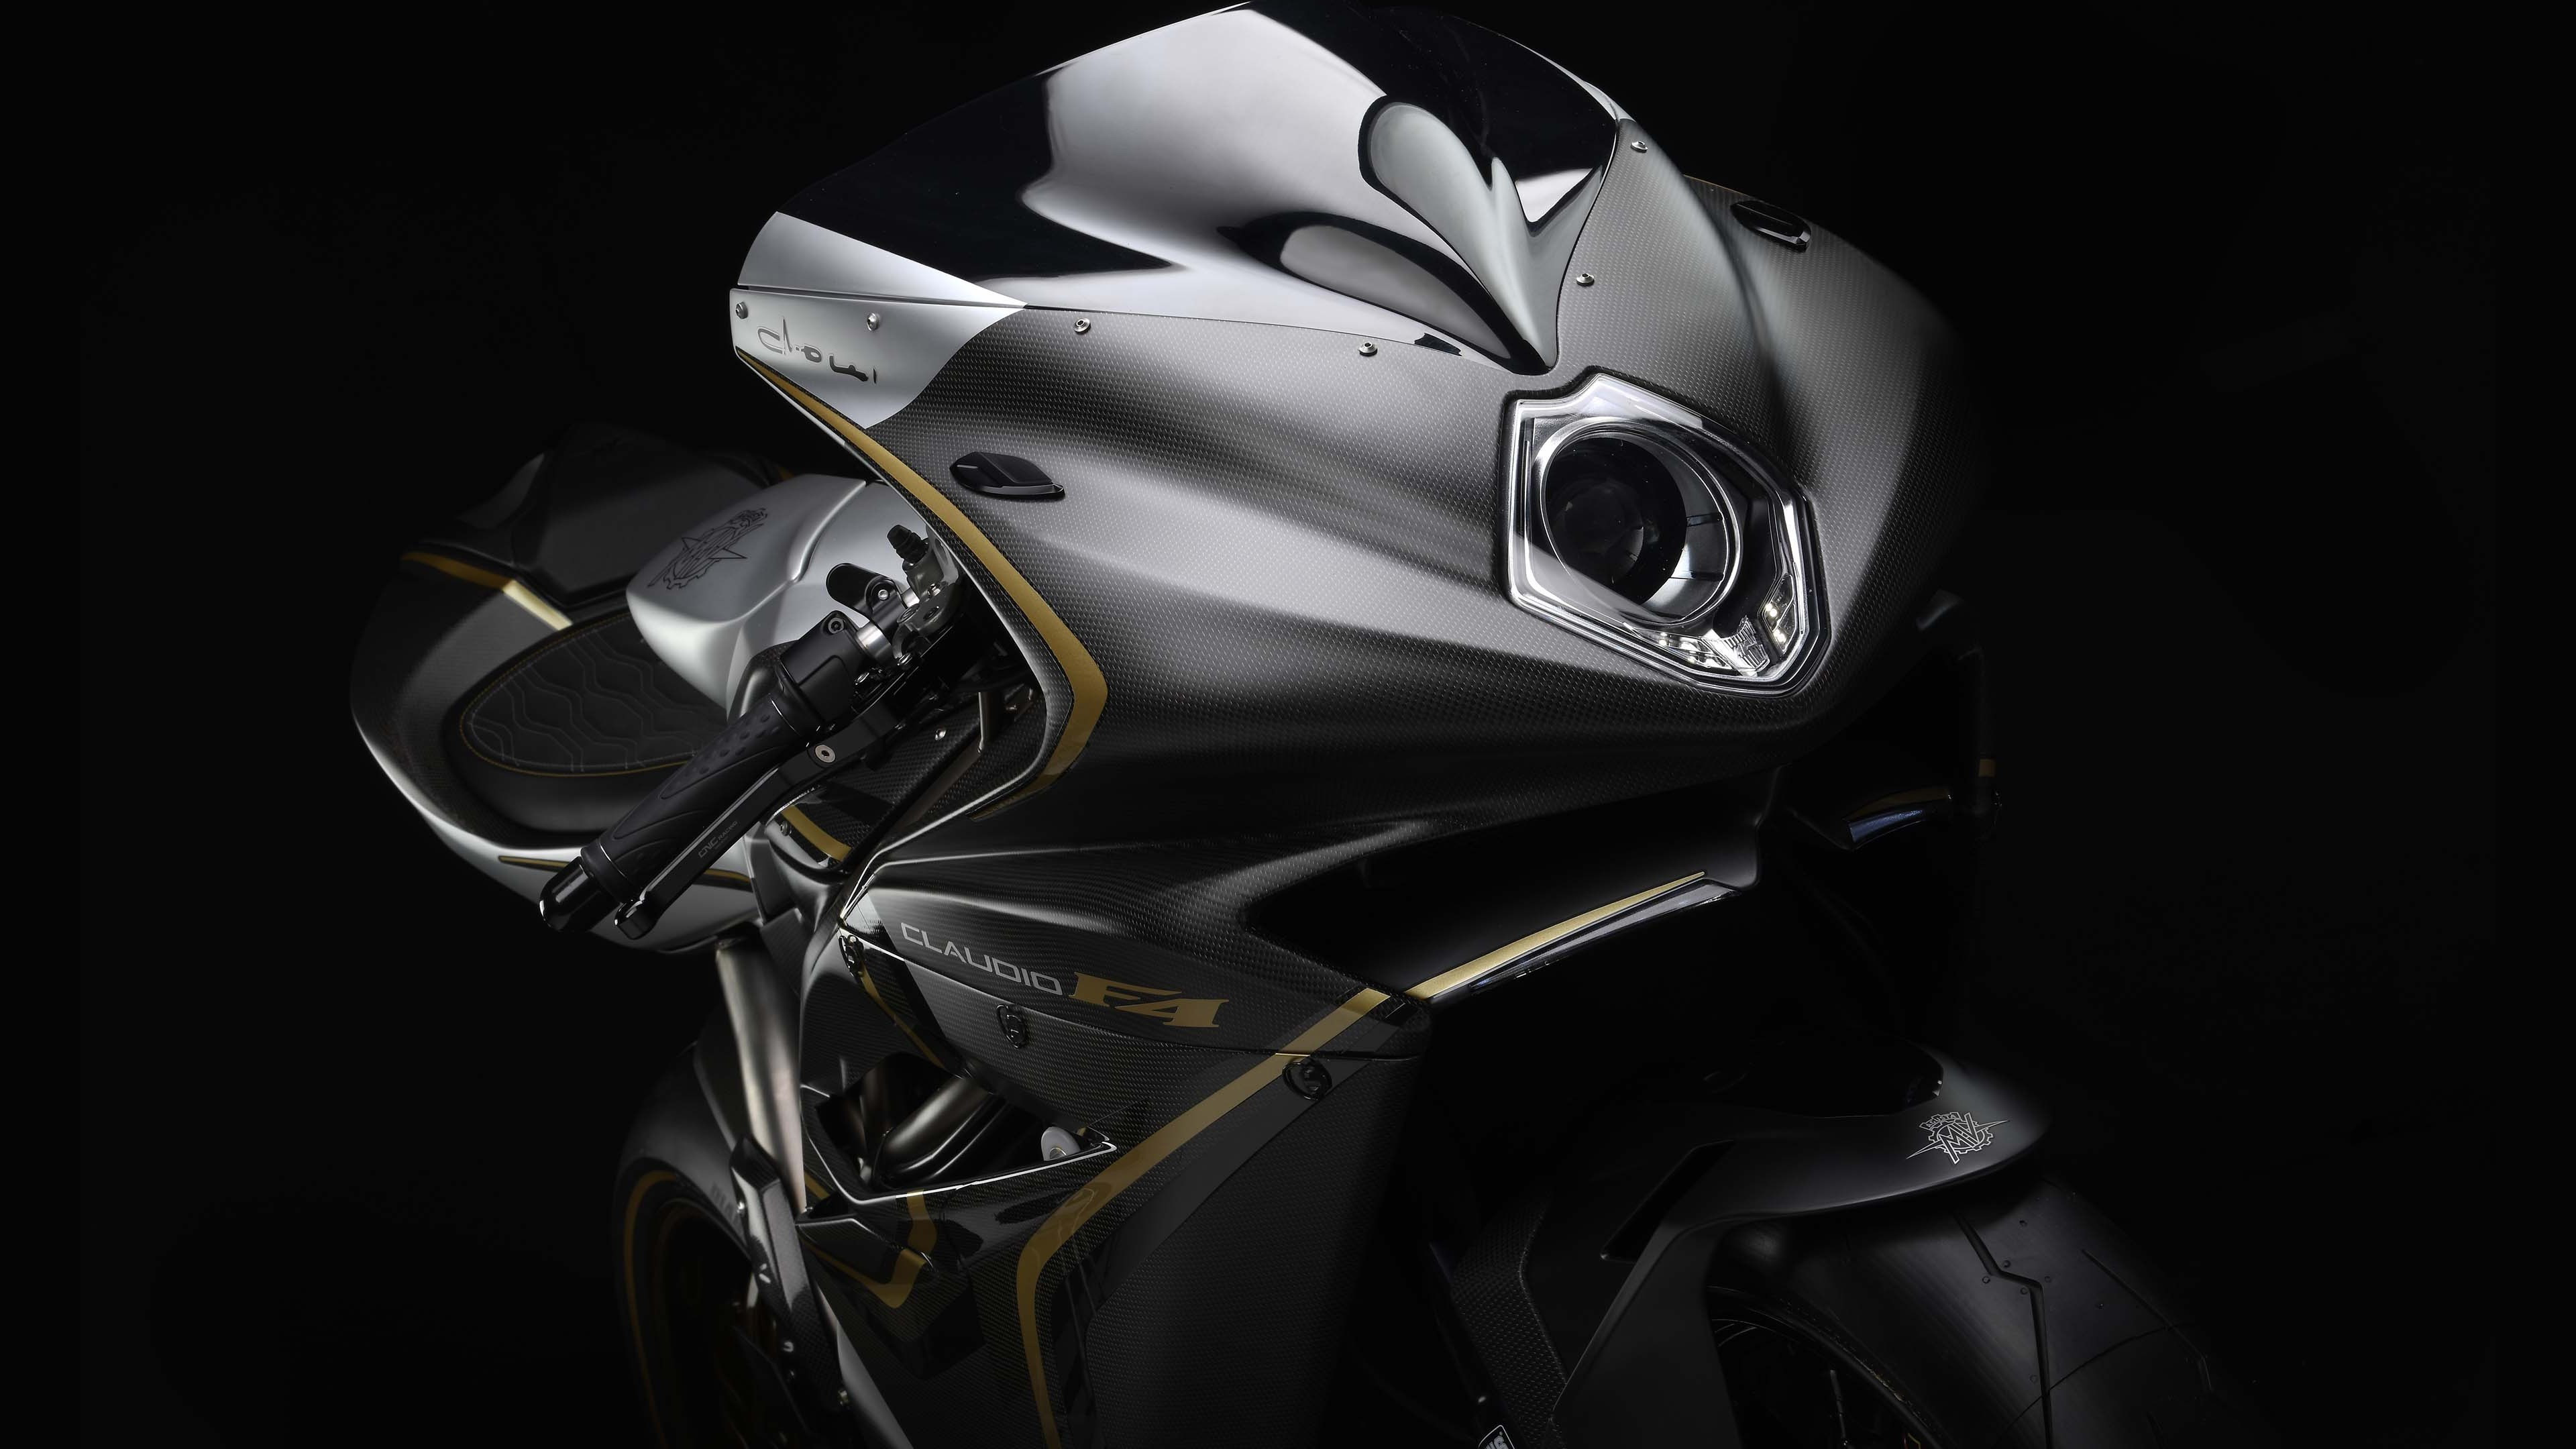 MV Agusta F4 Claudio wallpaper 3840x2160